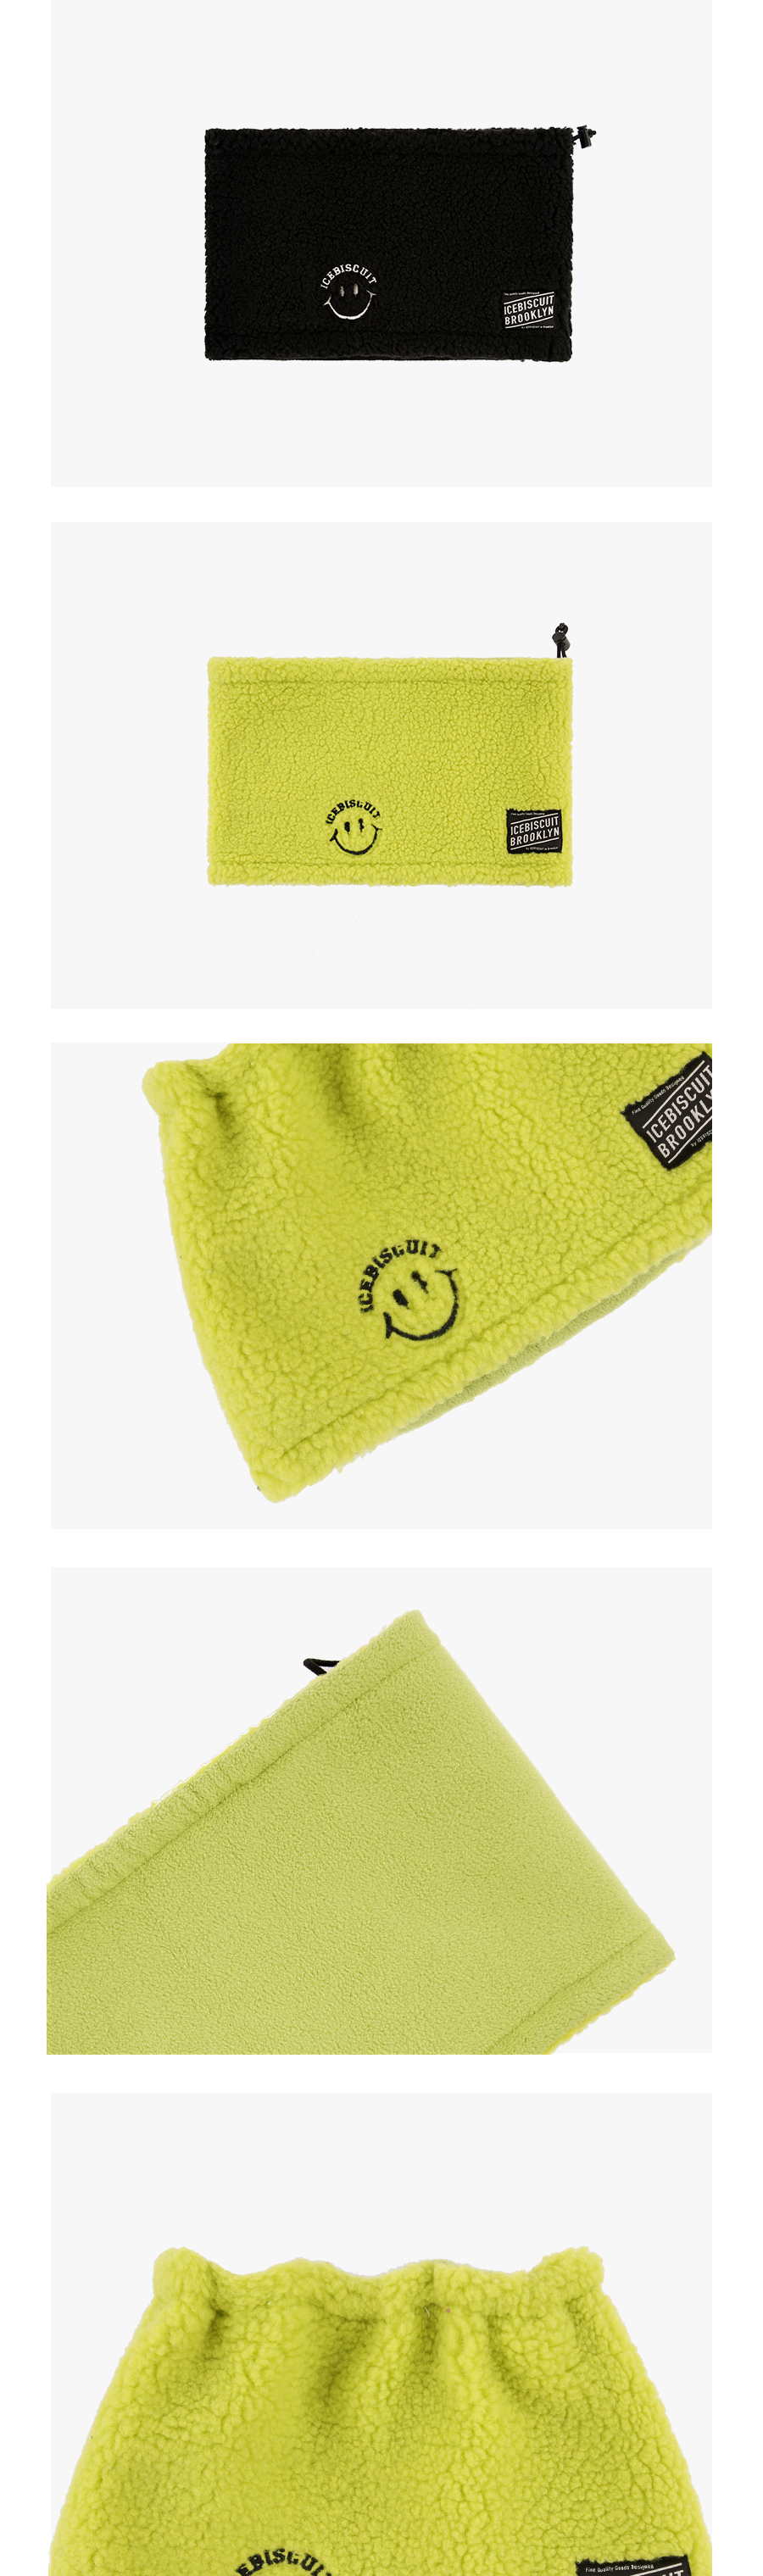 Smile fluffy neck warmer 상세 이미지